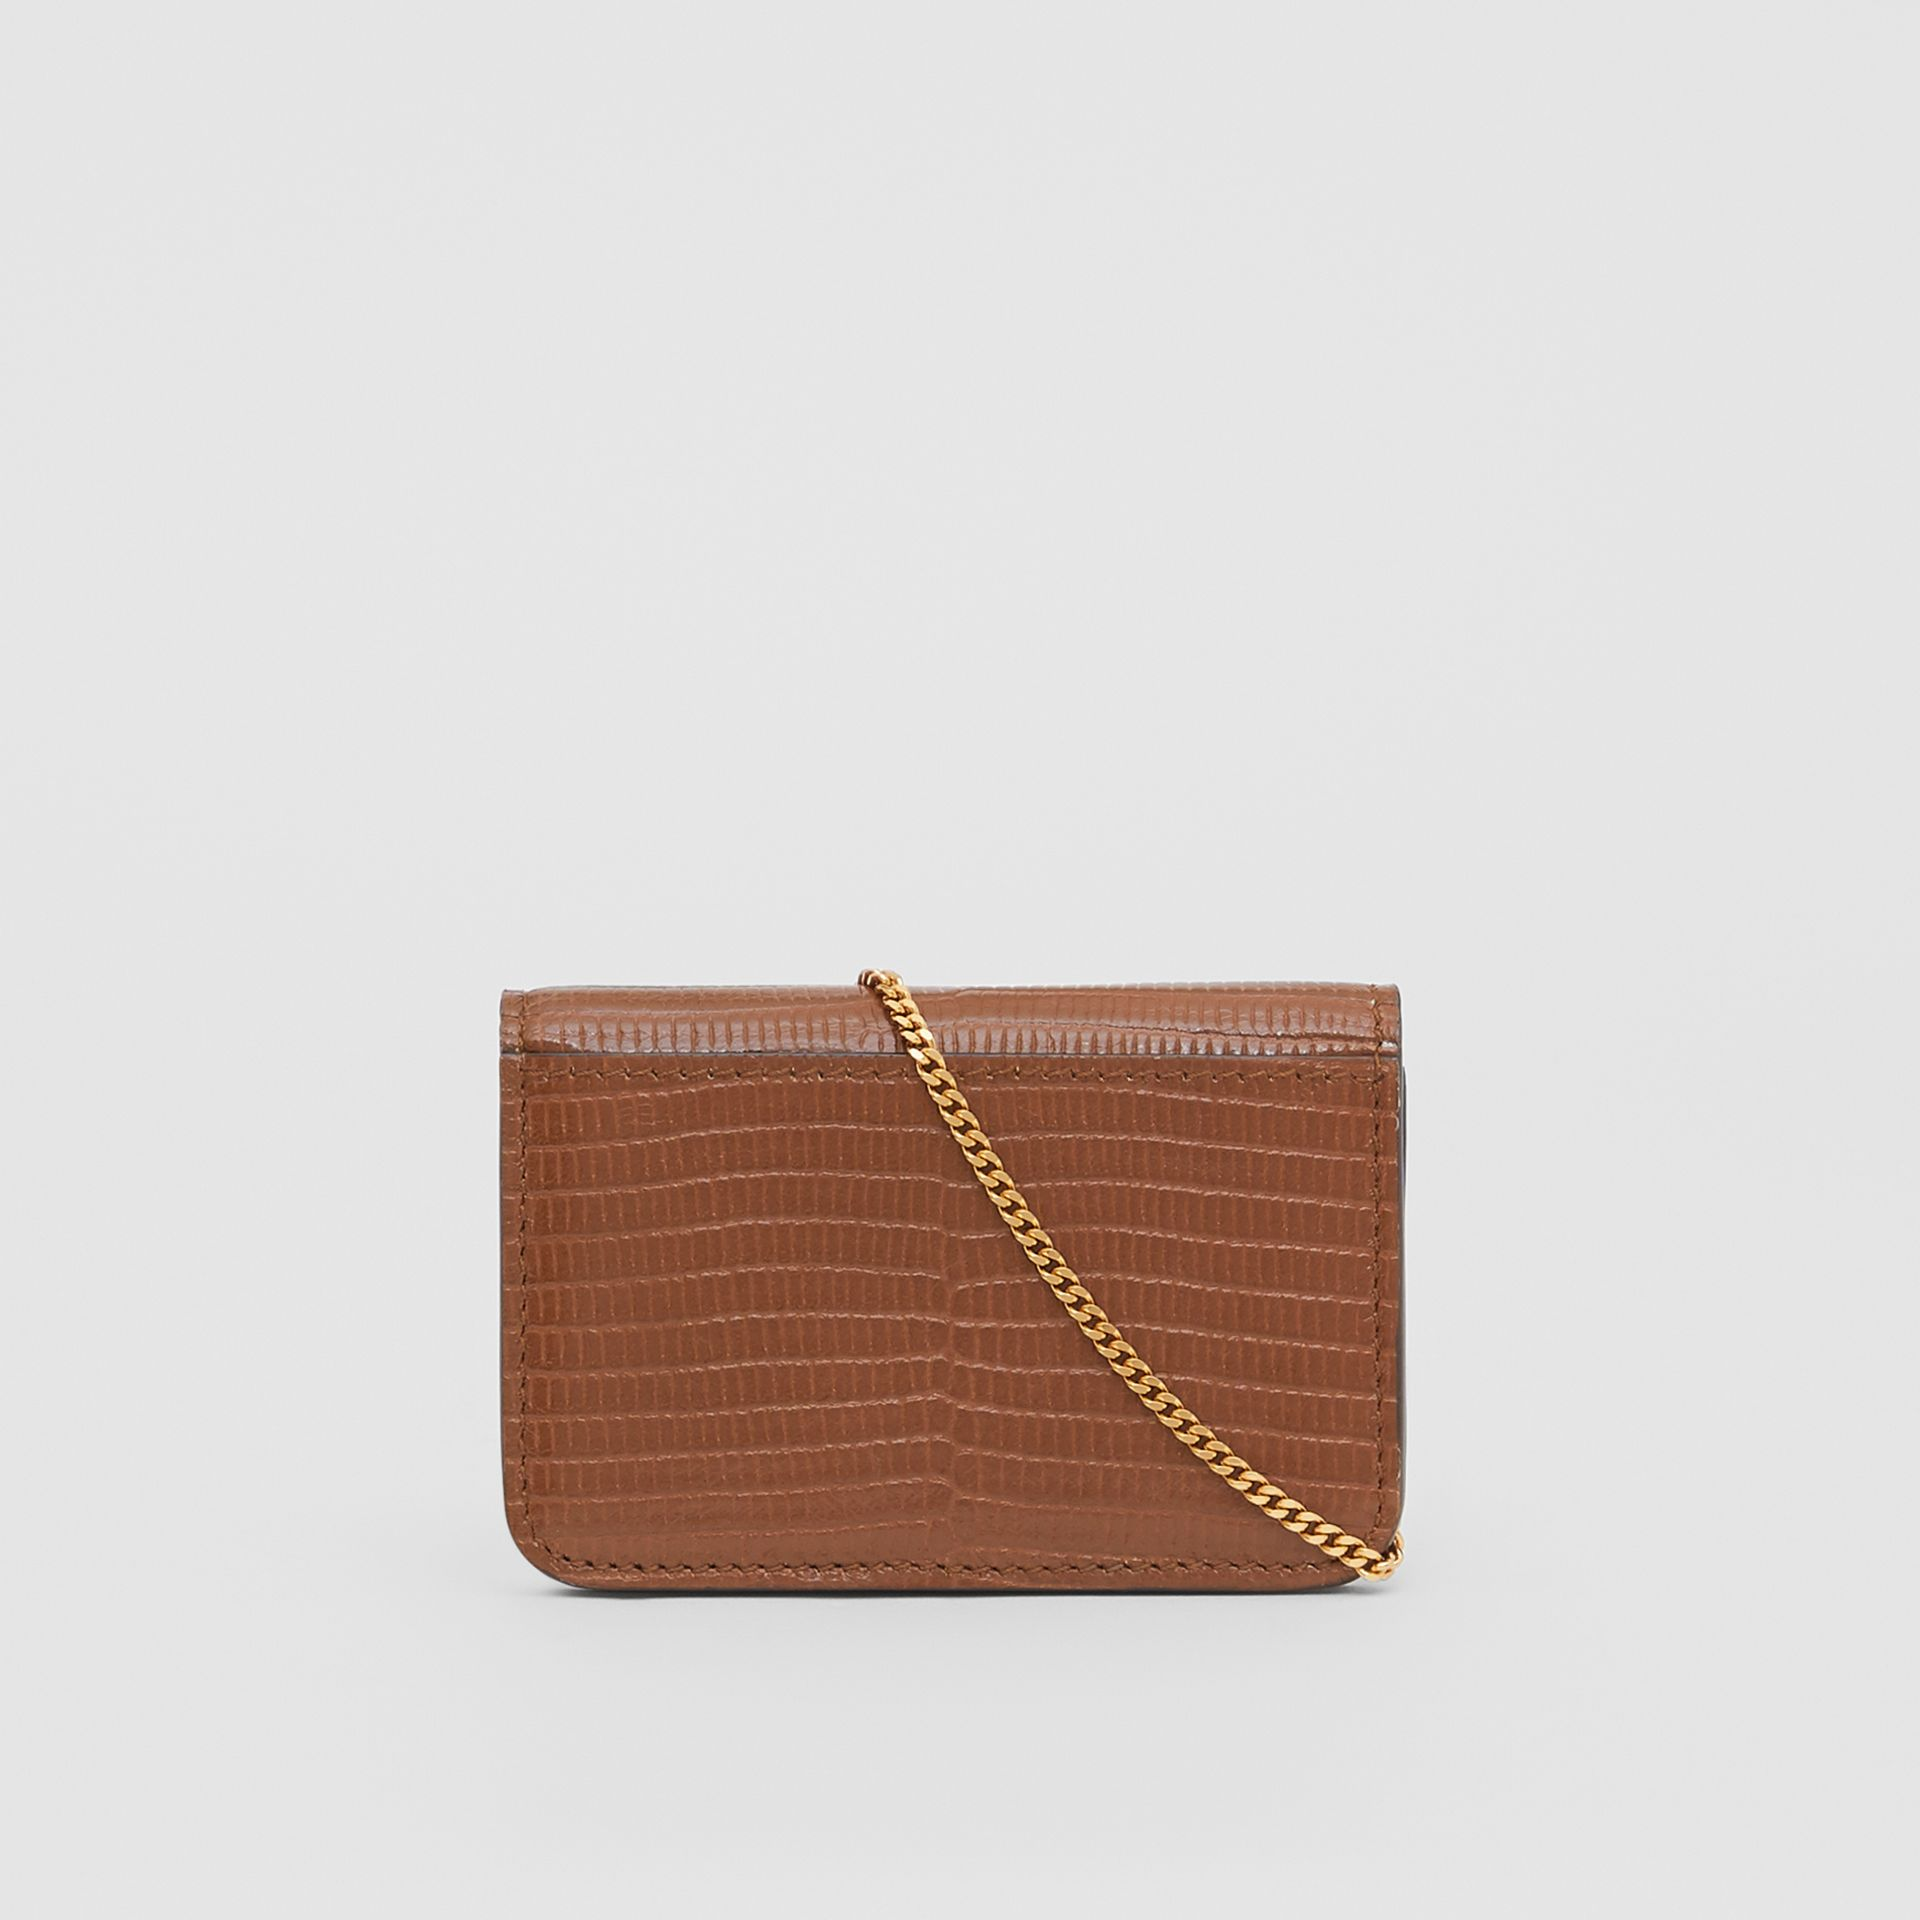 Embossed Deerskin Card Case with Chain Strap in Tan - Women | Burberry Canada - gallery image 8